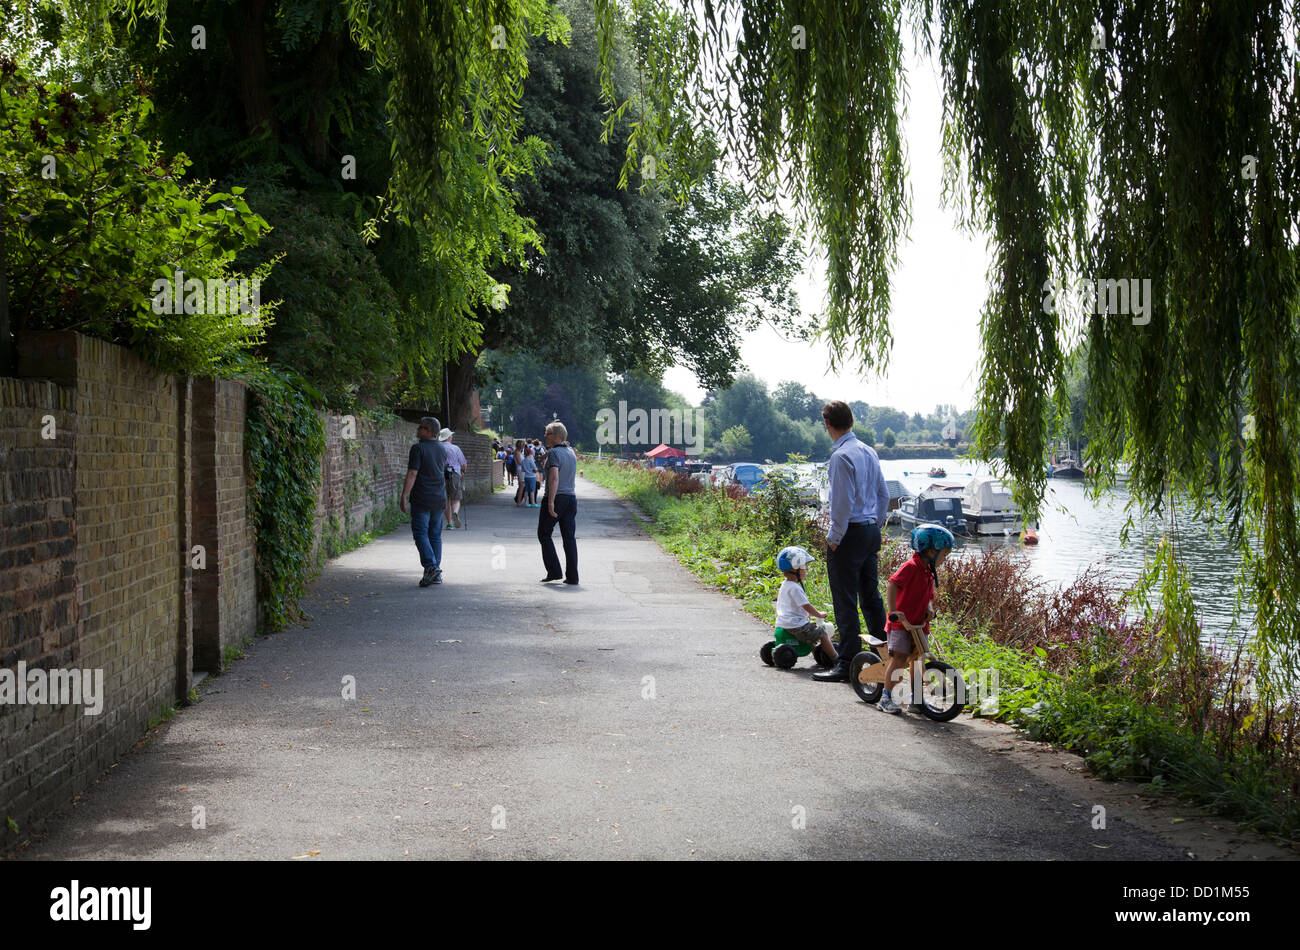 Richmond Towpath in TW9 - London UK - Stock Image